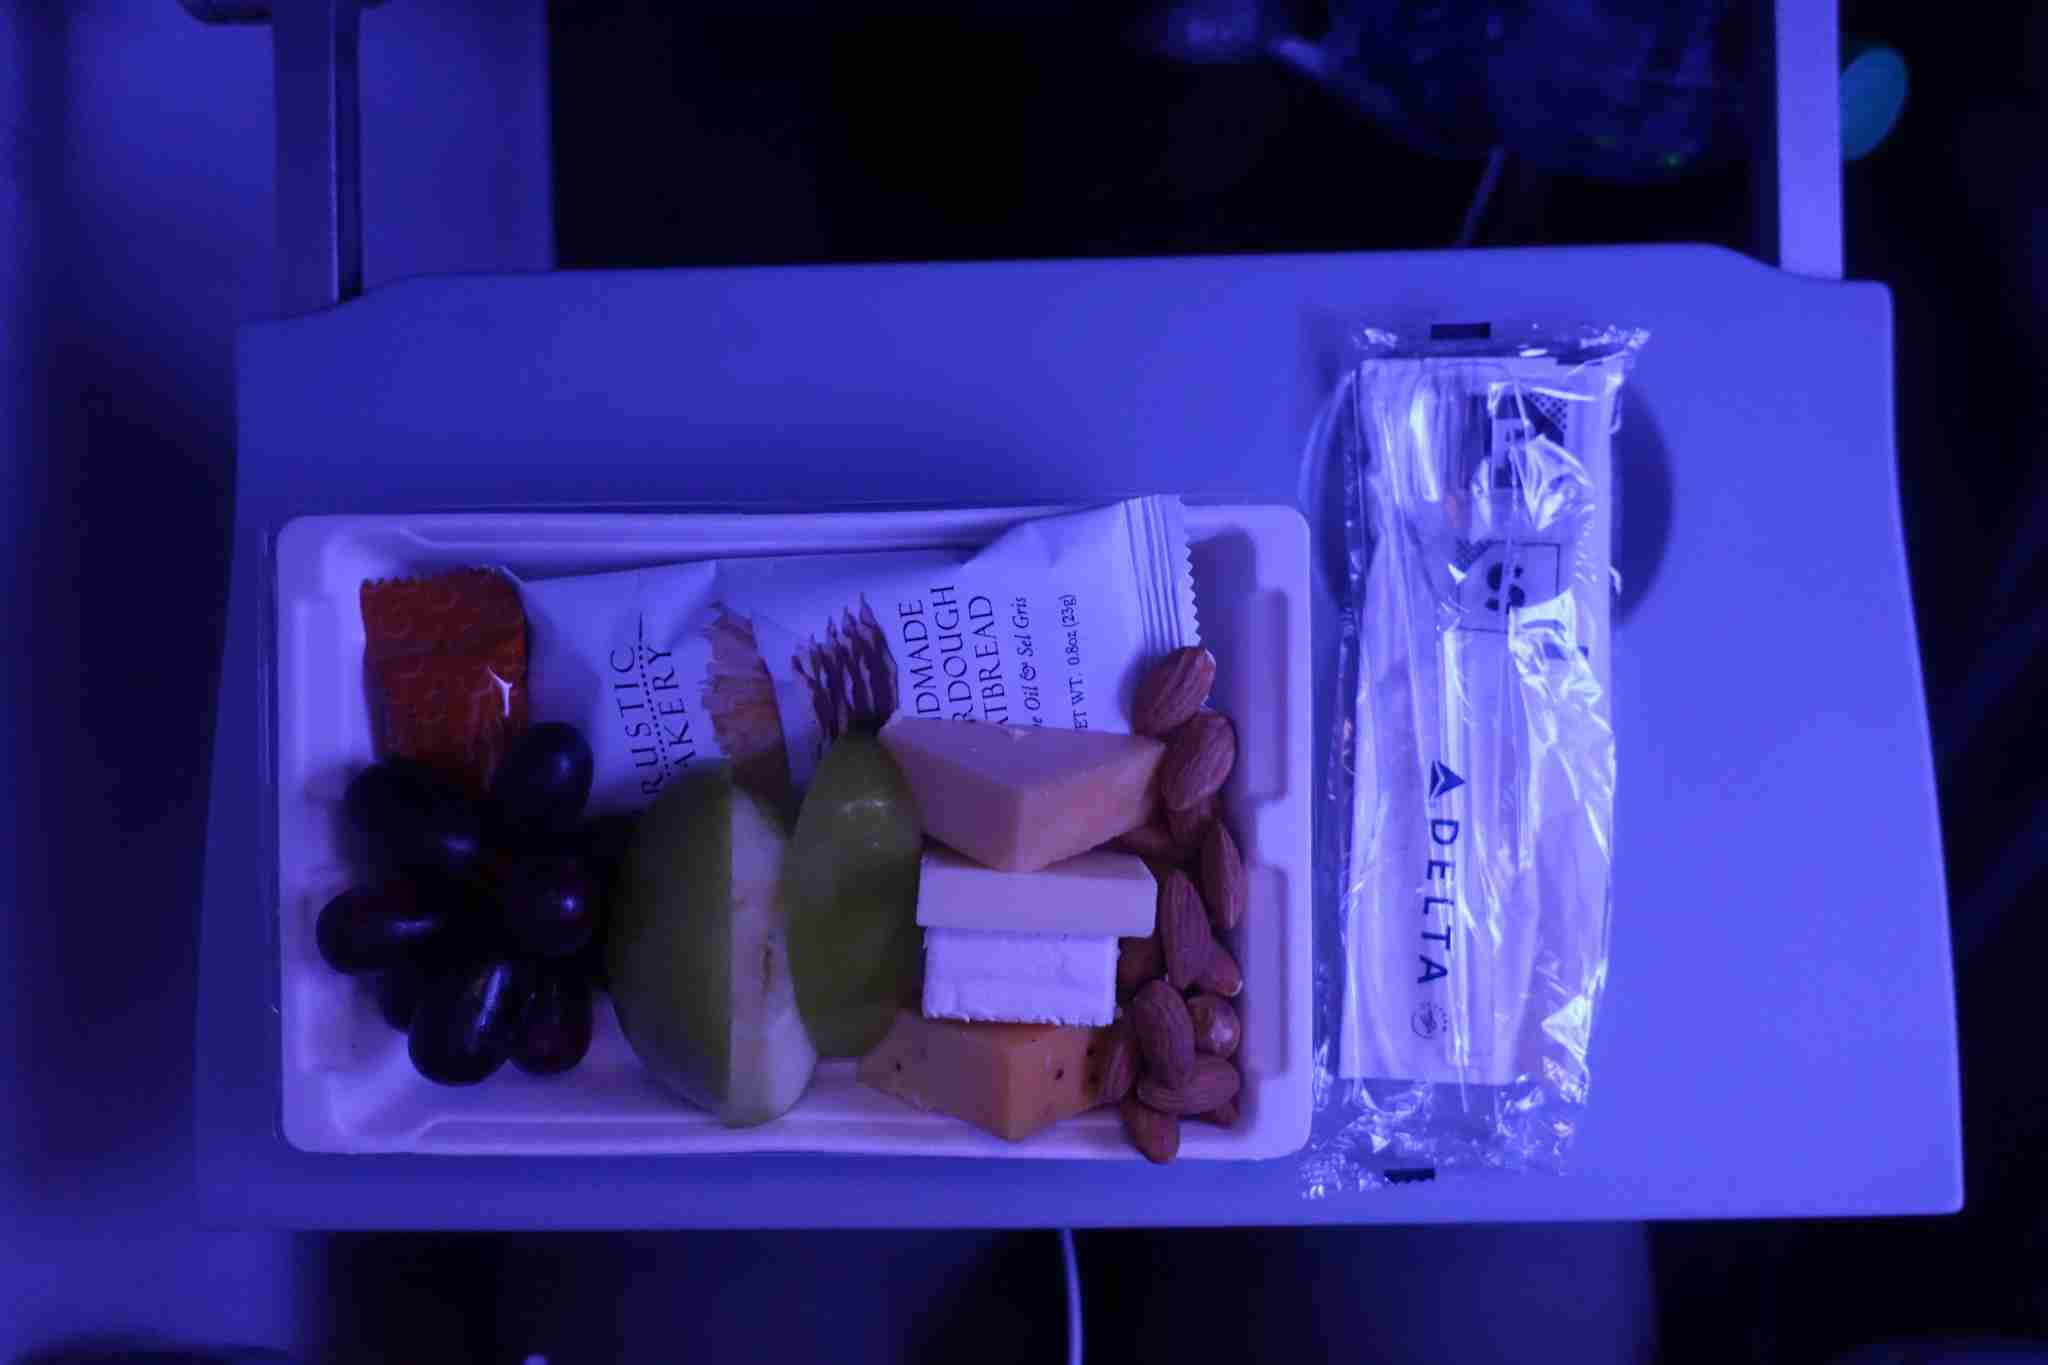 Fruit and cheese on my overnight flight.